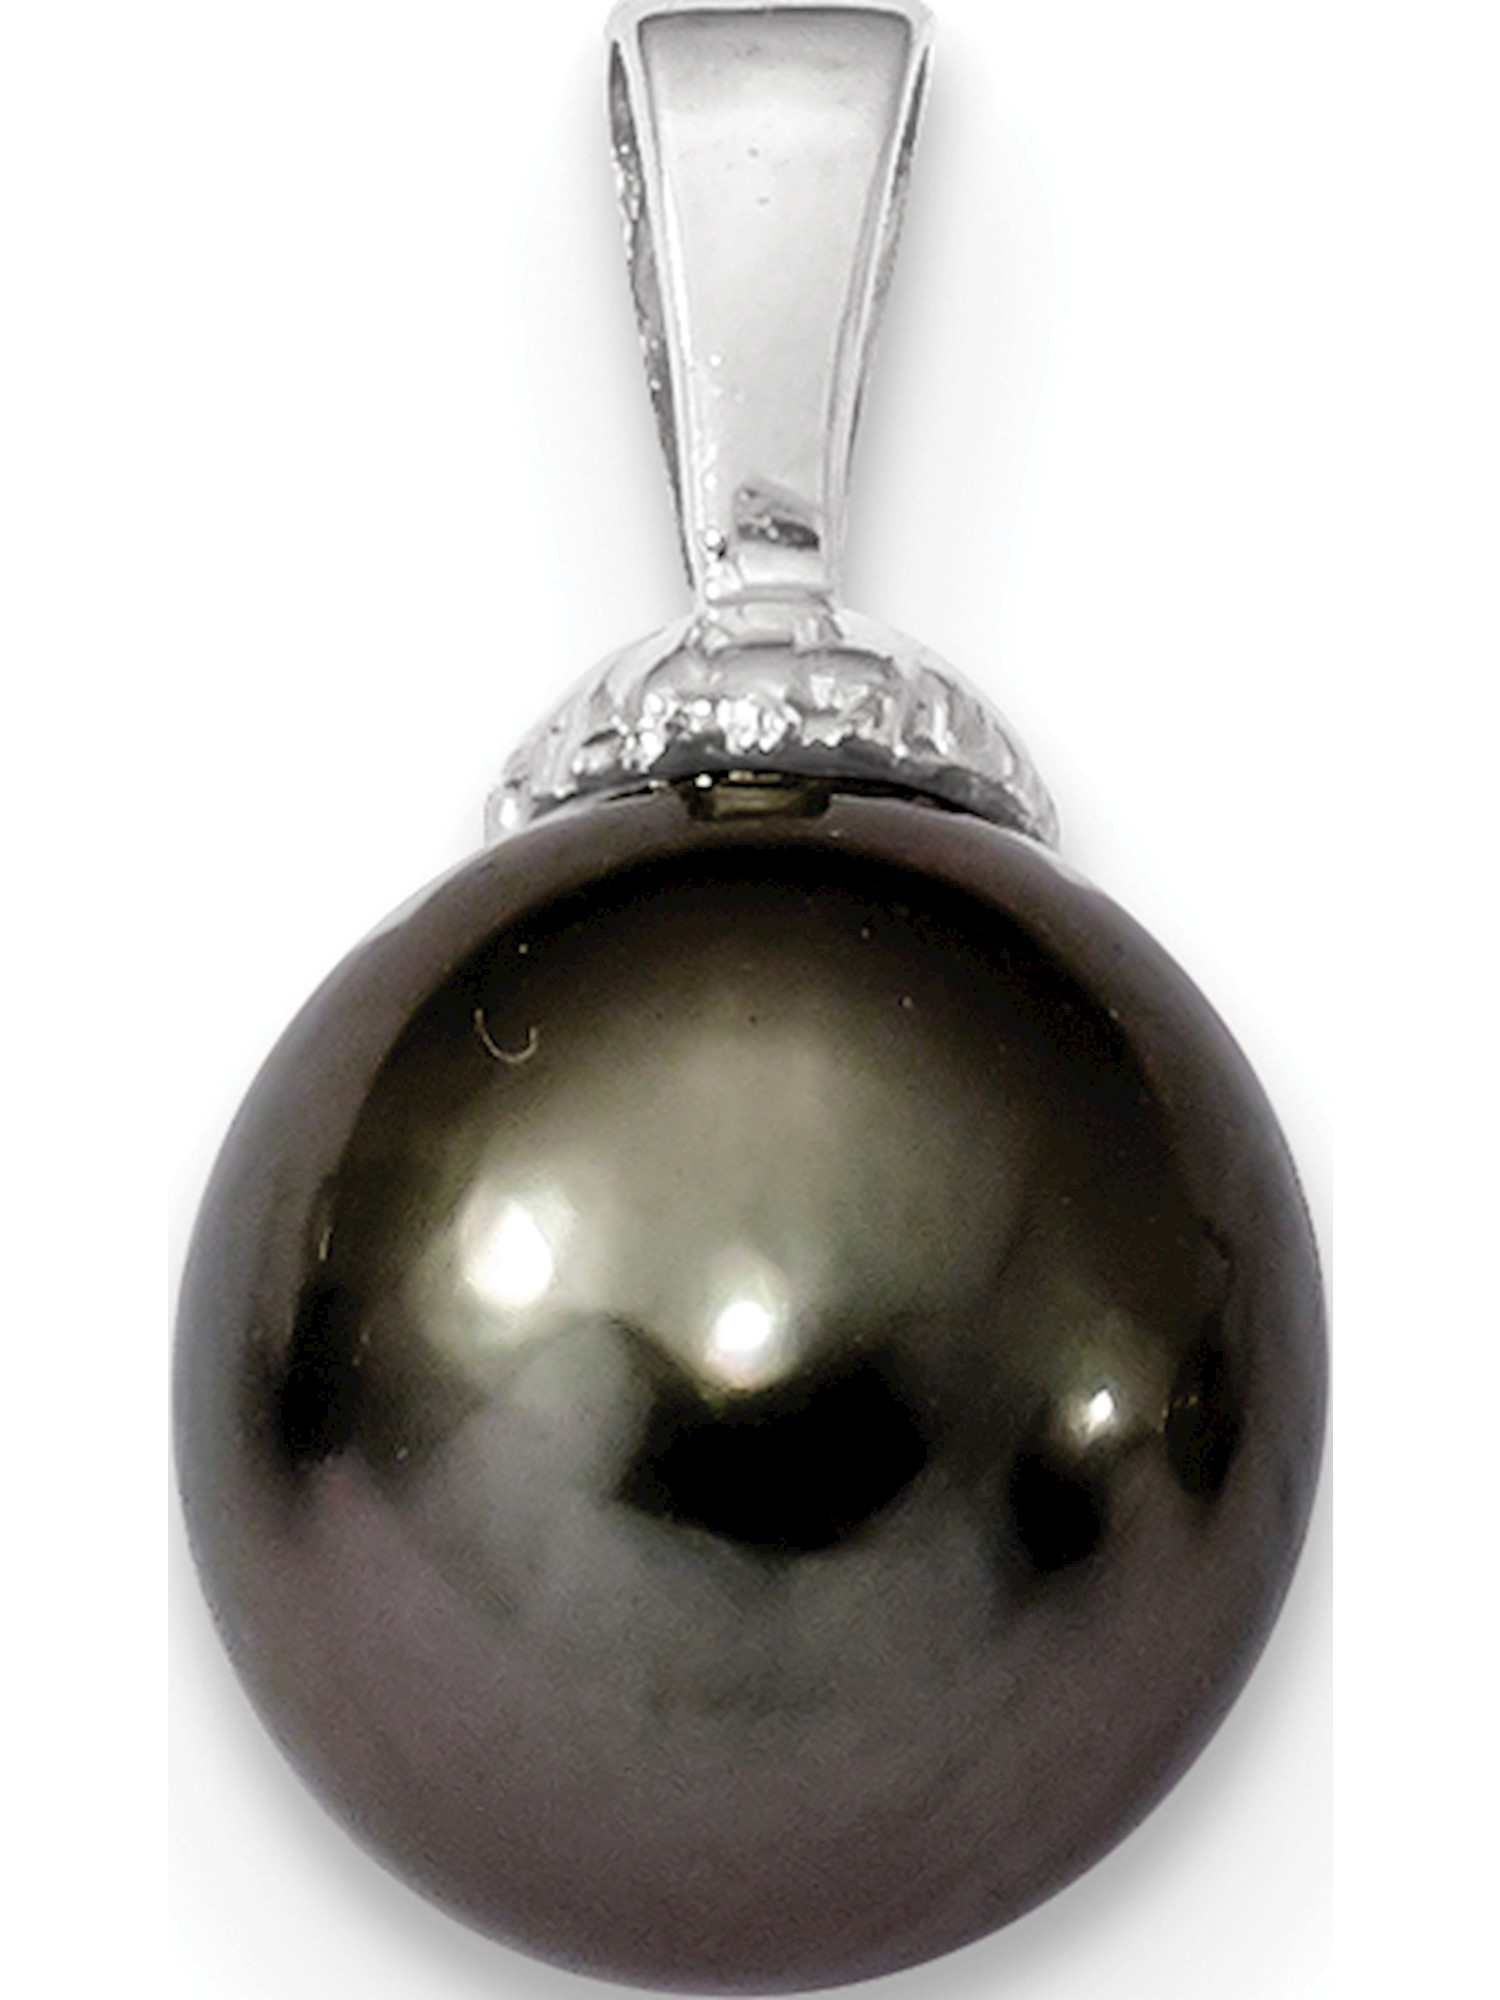 14k White Gold 10-11mm Black Tahitian Cultured Pearl Pendant   Charm by